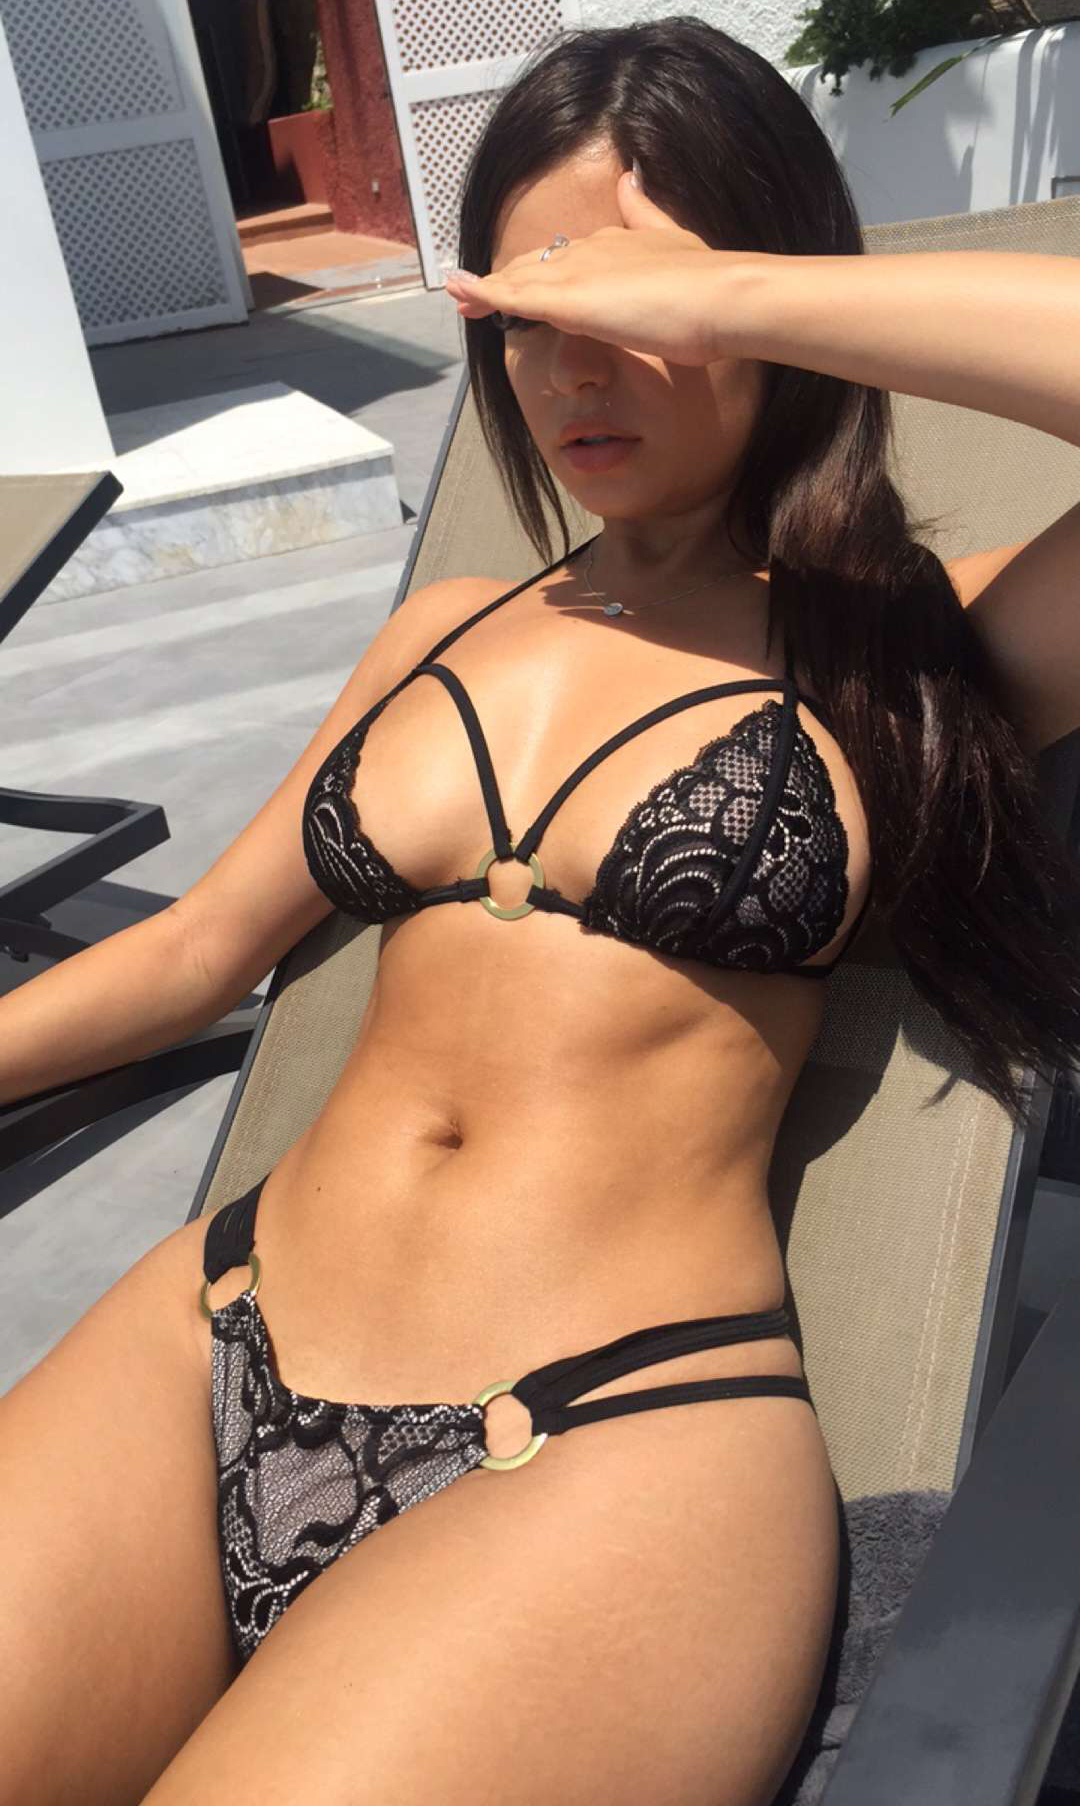 60afb3b31a Demi Rose Mujeres Bellas